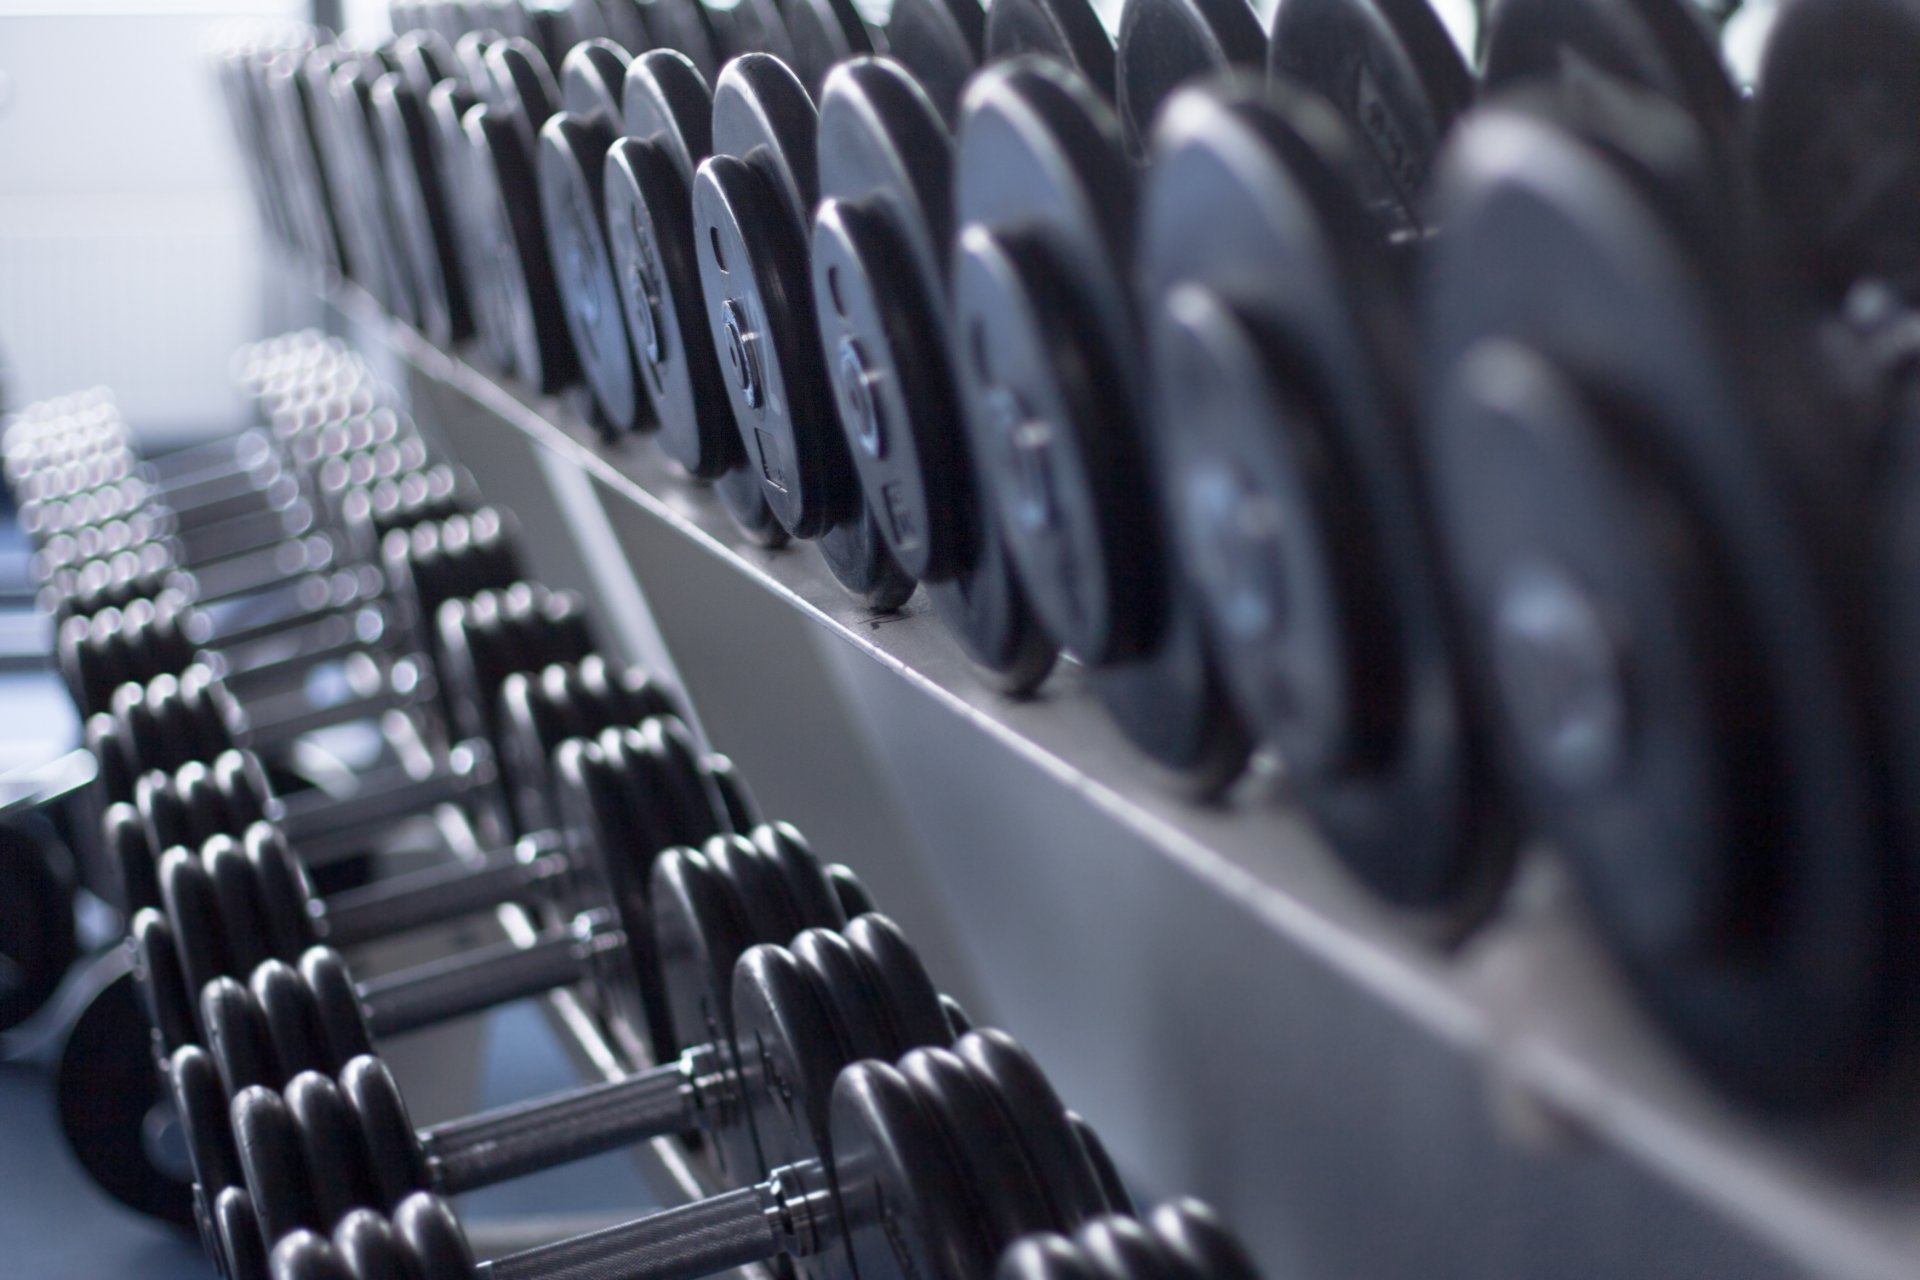 Gym Dumbbells Wallpaper 66602 1920x1280px